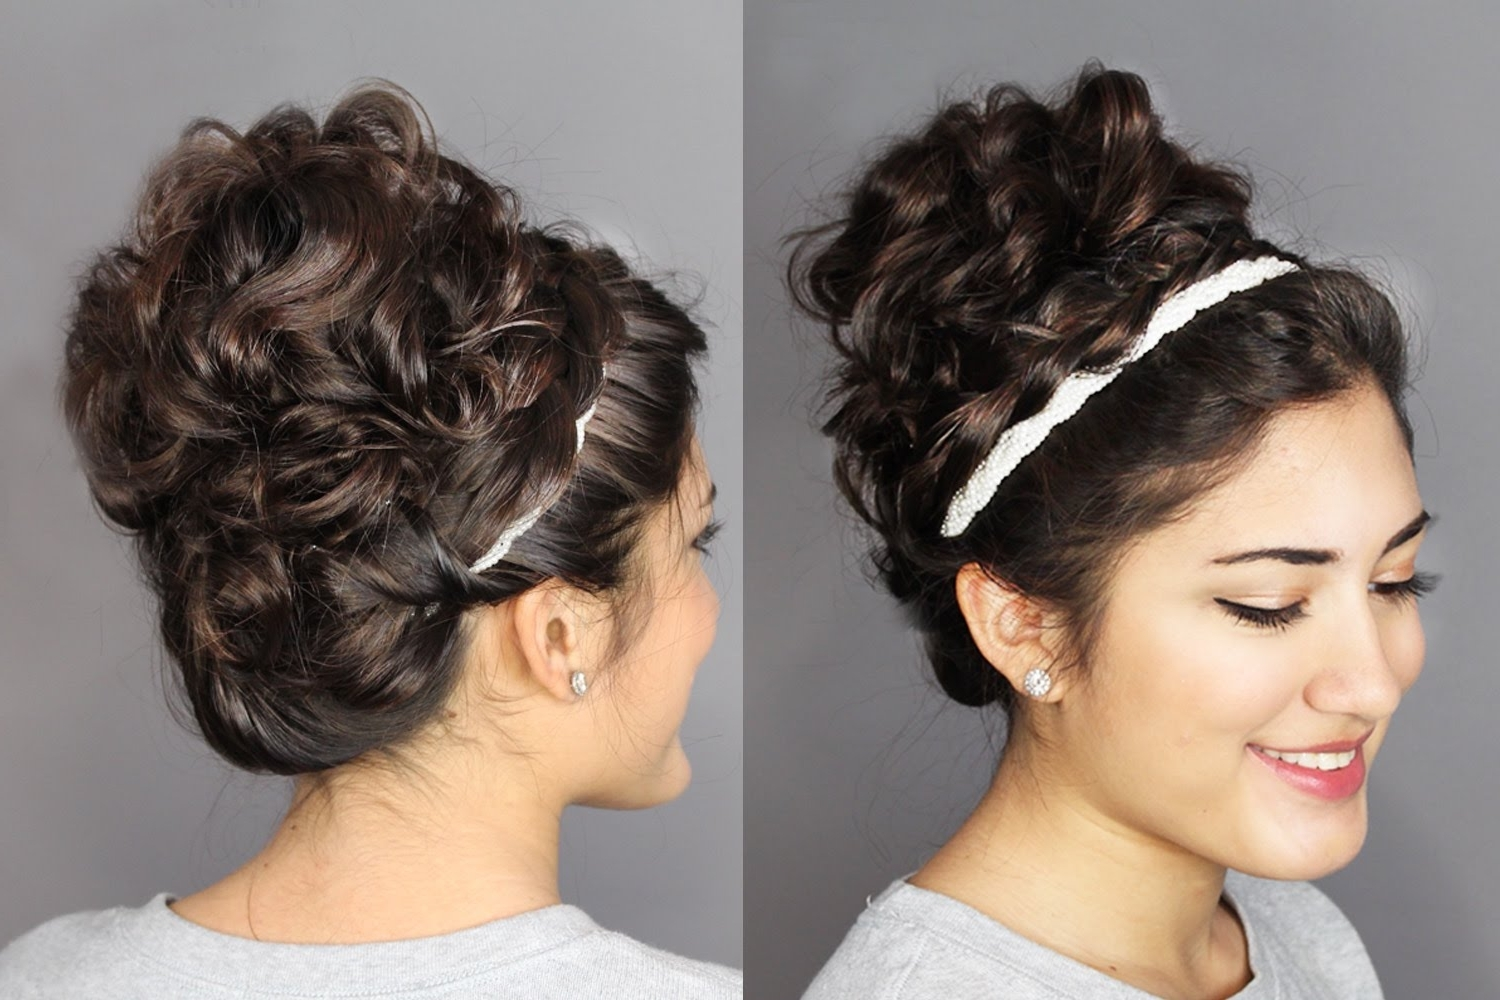 Second Day Hair Holiday Updo: Braided Headband & Messy, Curly Bun Within Updo Hairstyles For Sweet  (View 12 of 15)